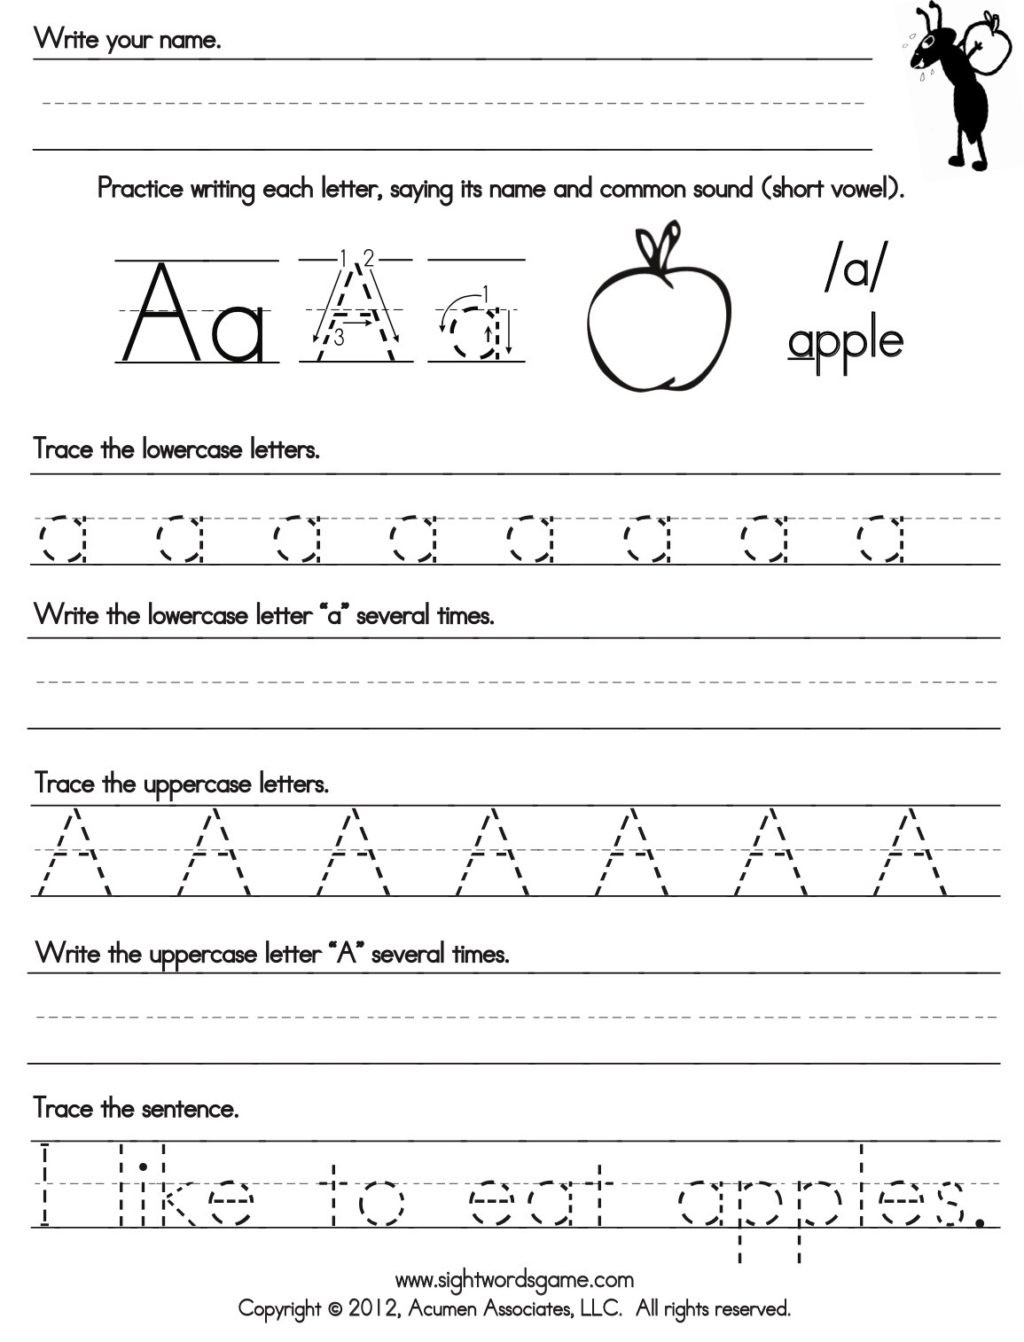 Tracing Lowercase Letters Printable Worksheets Worksheet Cursive Practice Alphabet Free Writing Sheets